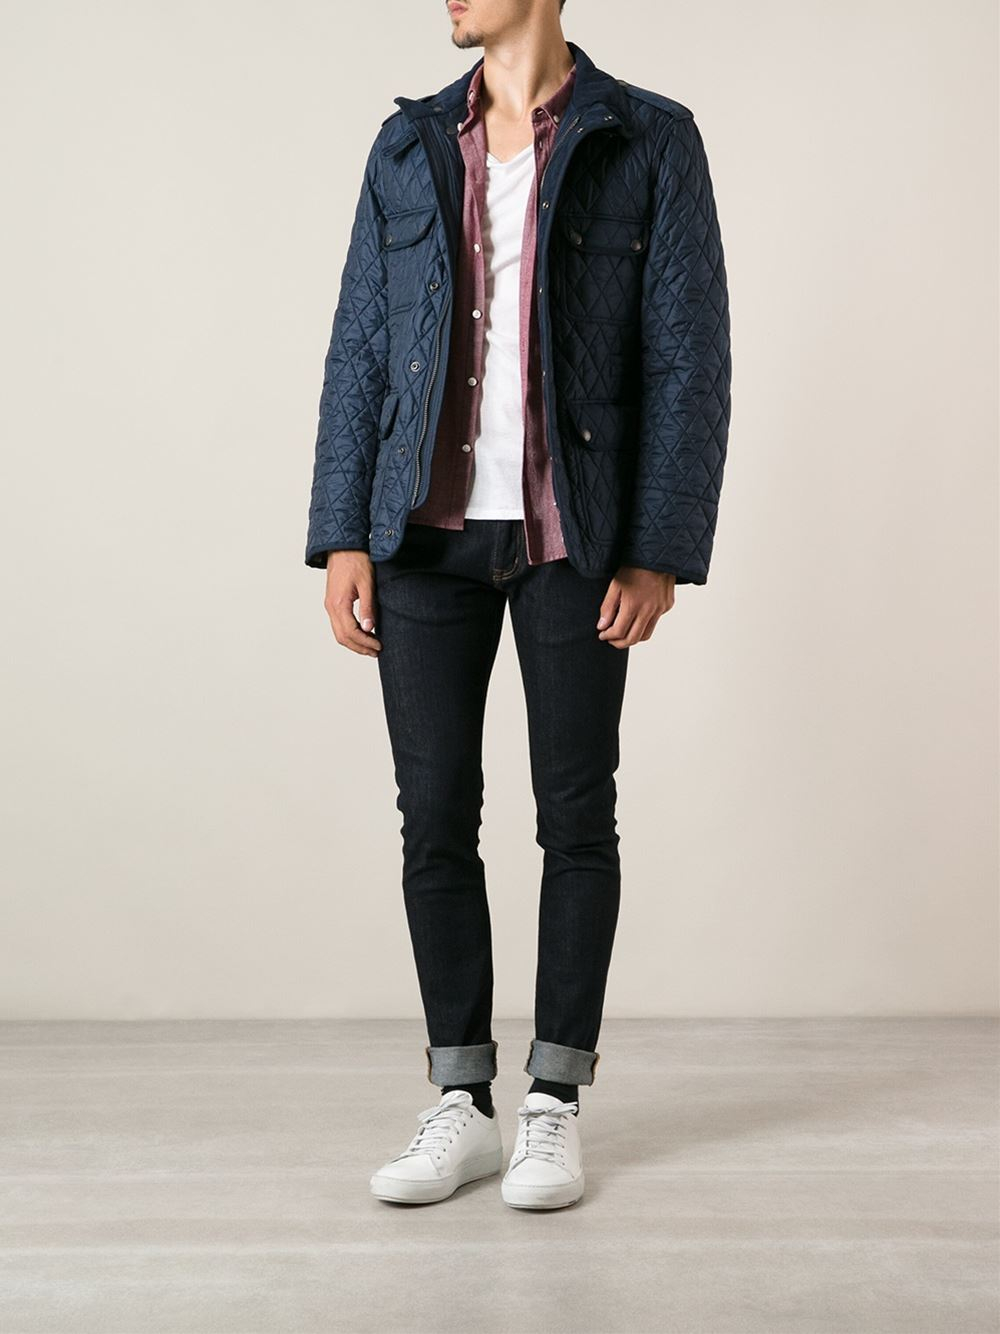 Lyst Burberry Brit Diamond Quilted Field Jacket In Blue For Men